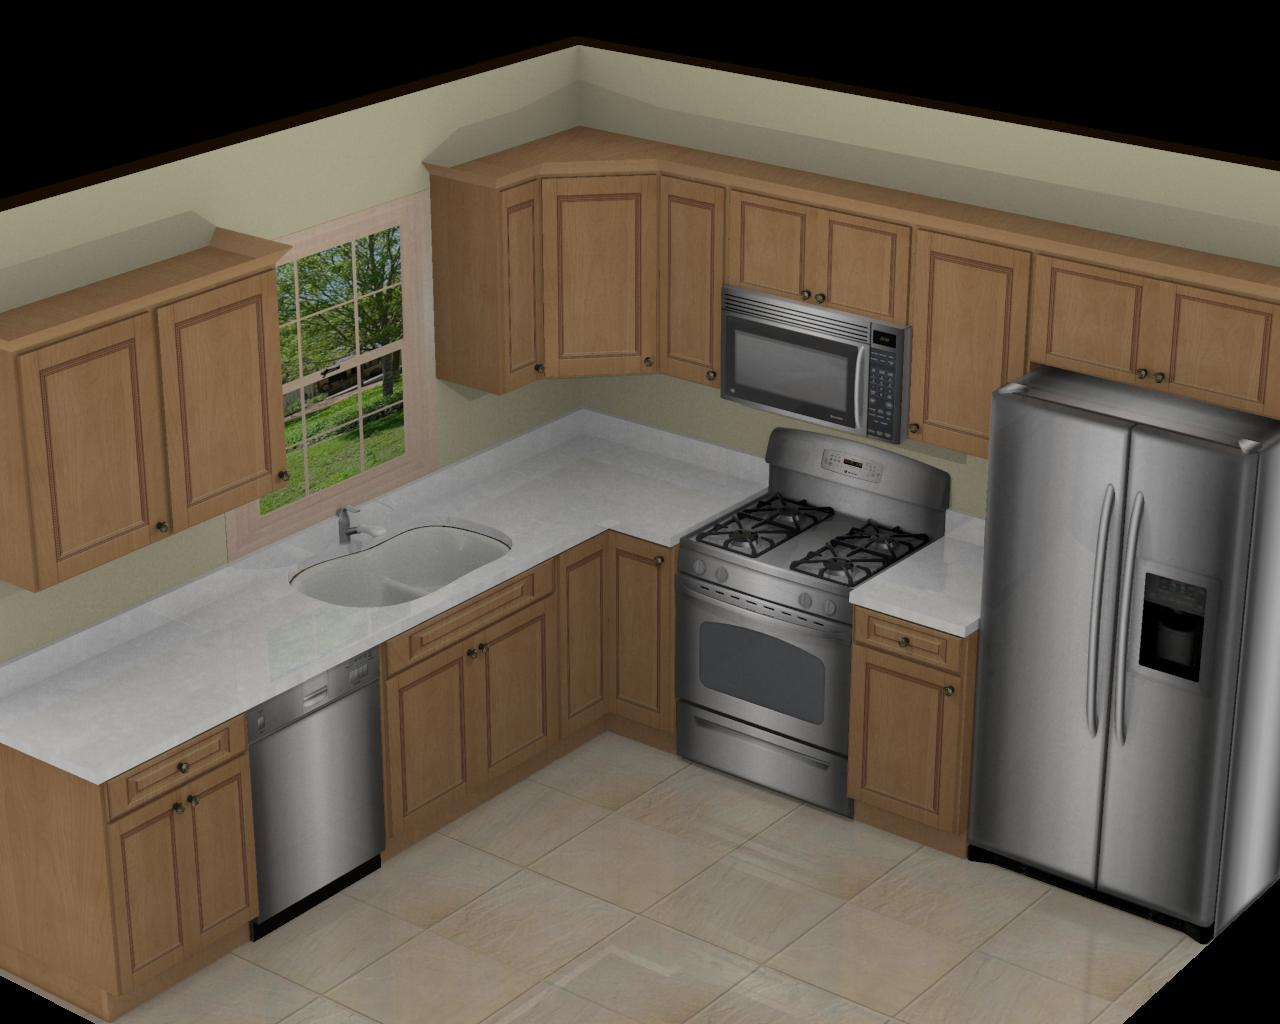 Foundation dezin decor 3d kitchen model design for Kitchen designs photos